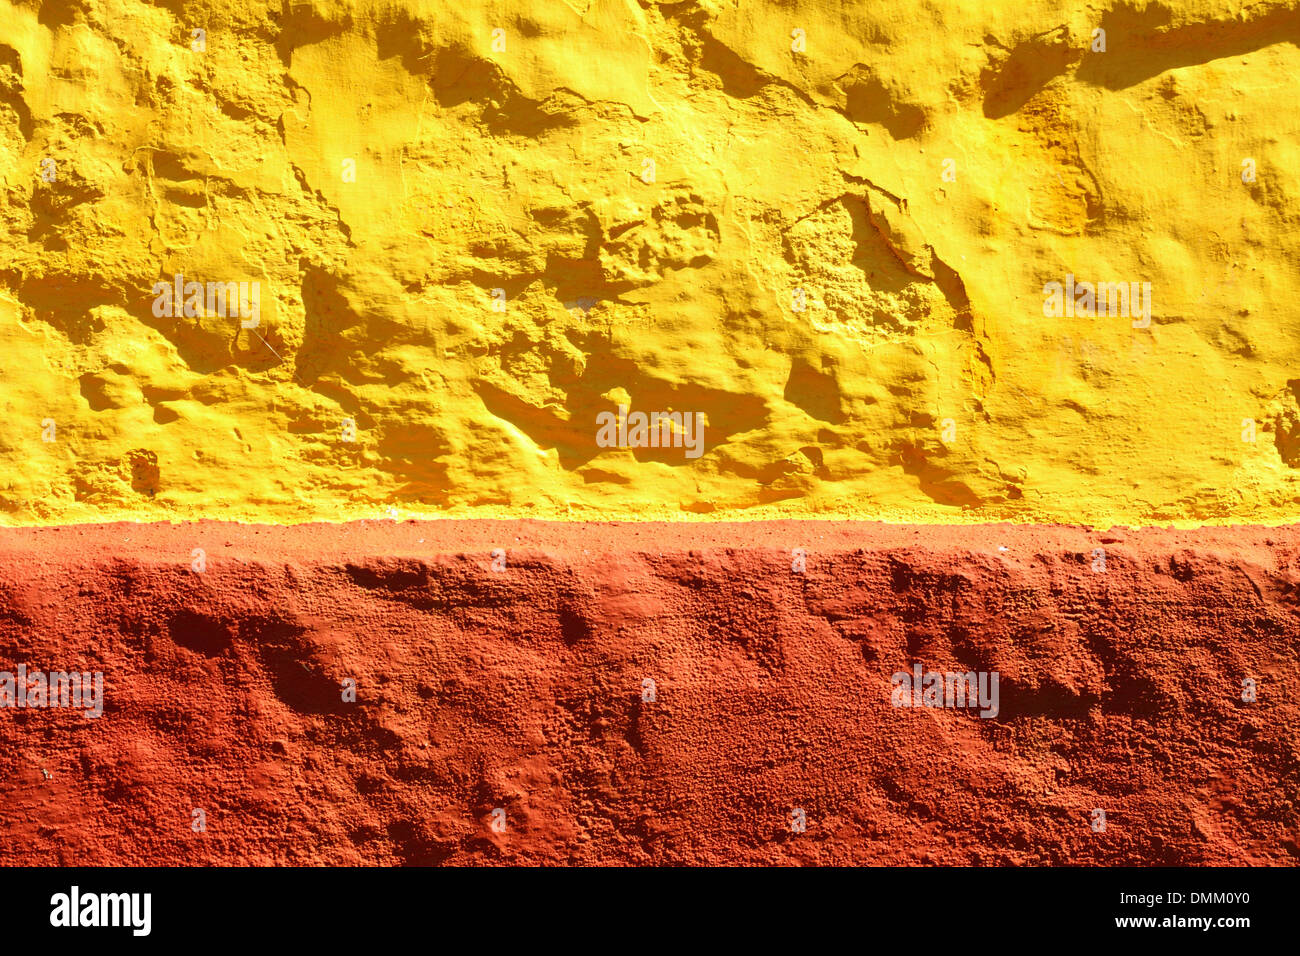 close up yellow red paint uneven rough old concrete wall